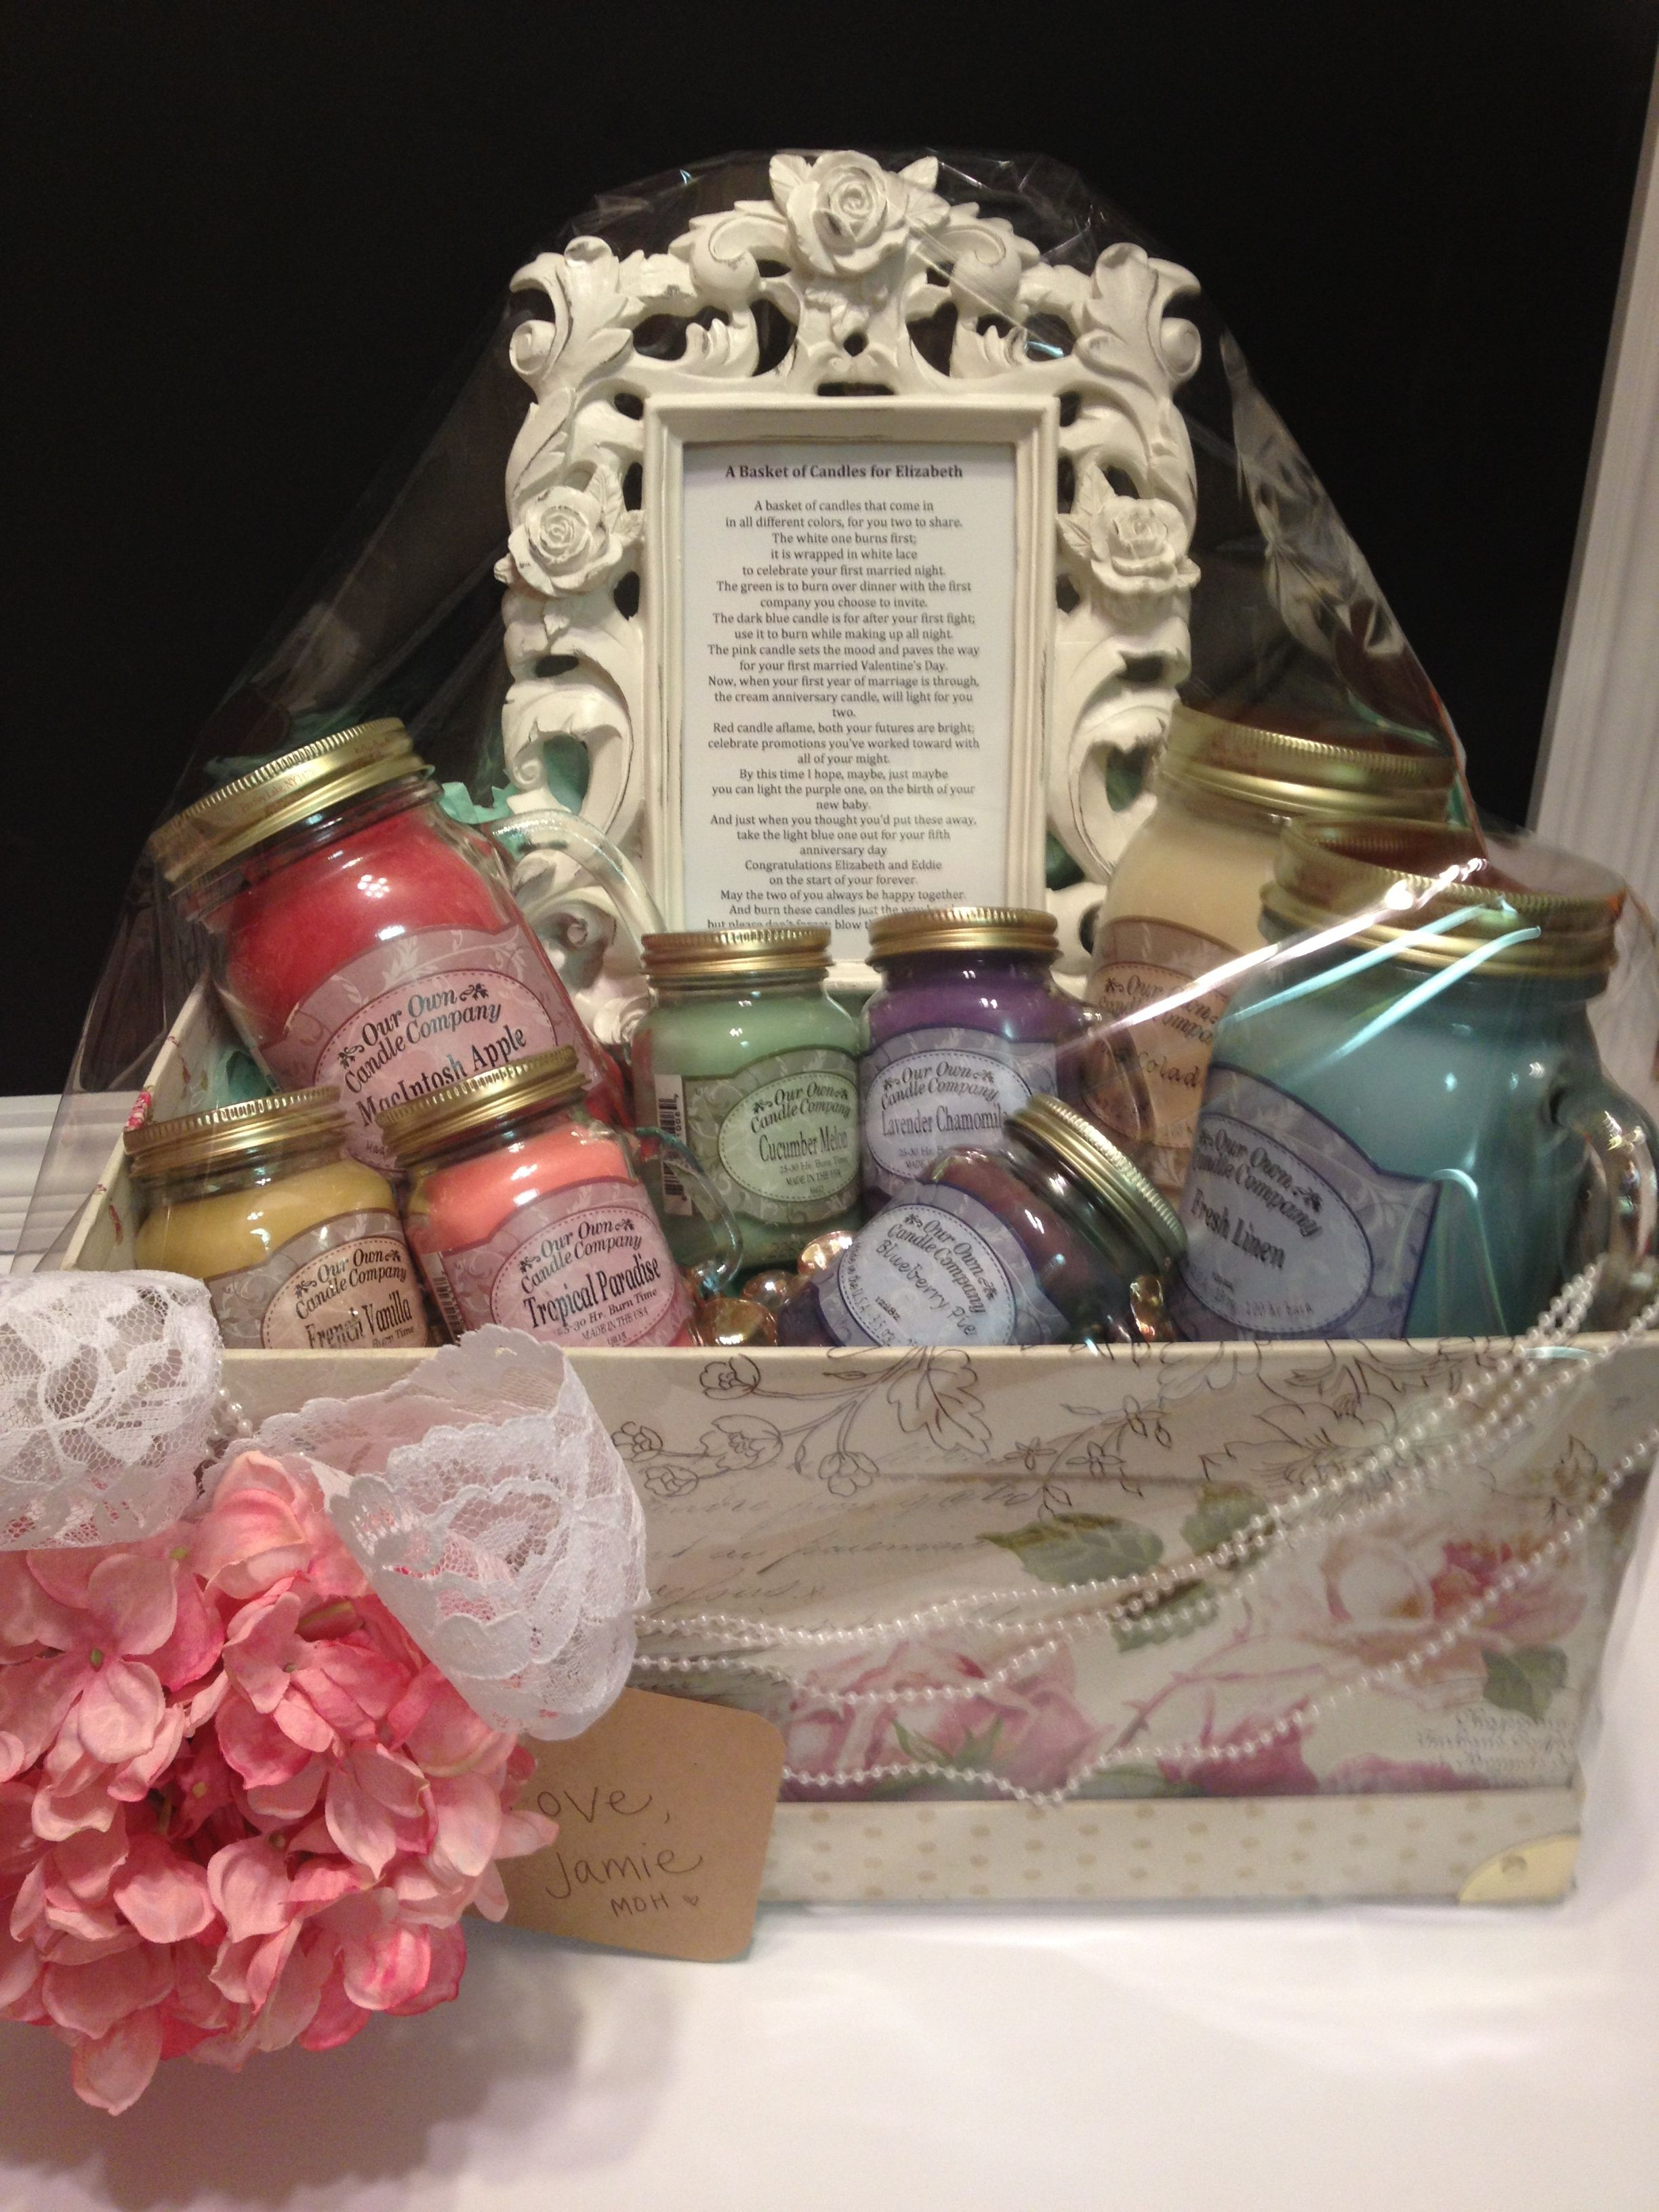 Basket of candles with poem for newlyweds. Wedding